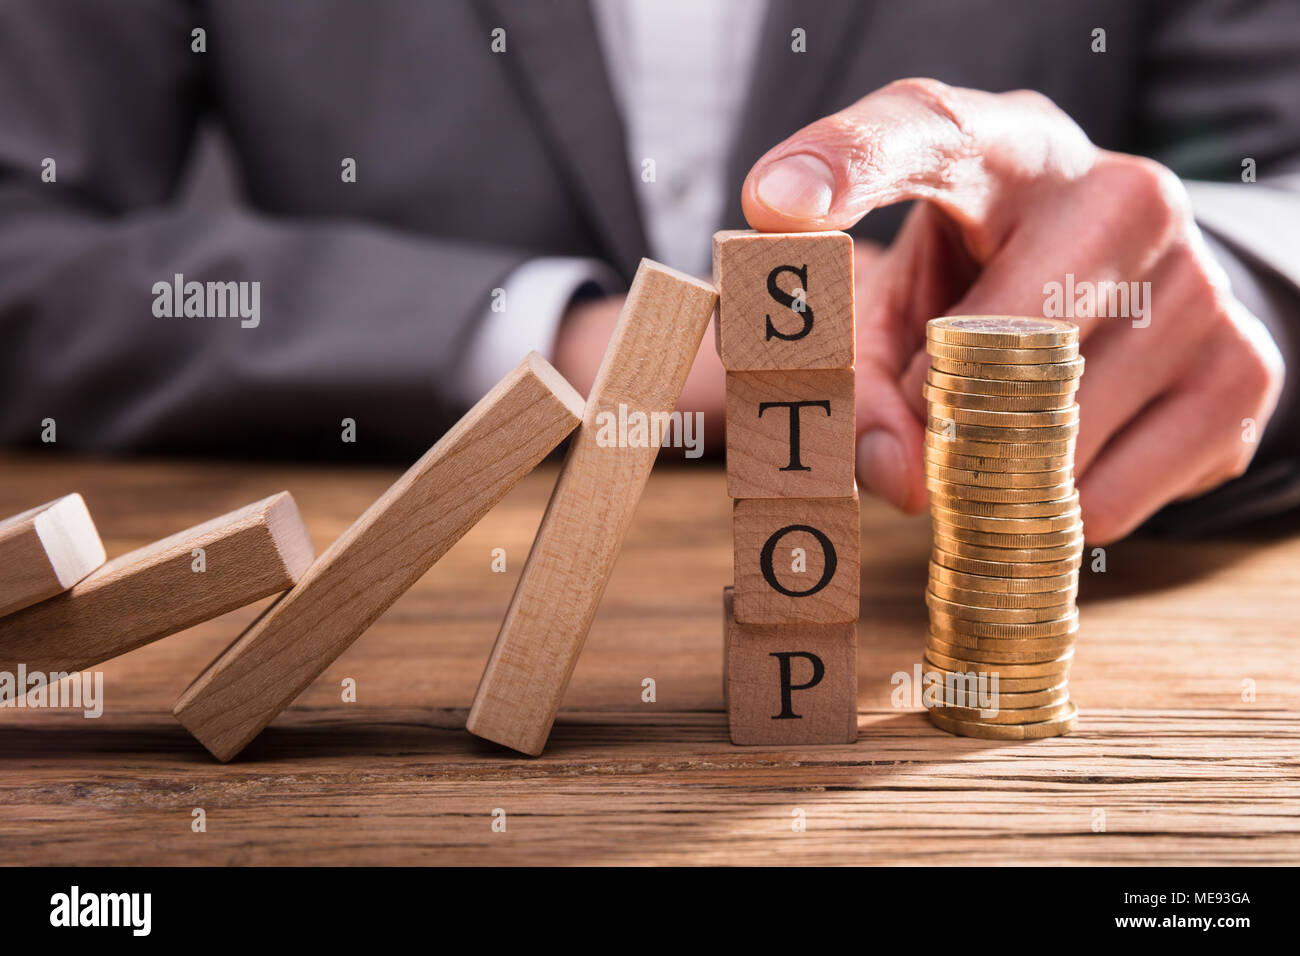 Human Finger Stopping Dominos From Falling With Stacked Coins On Wooden Desk - Stock Image